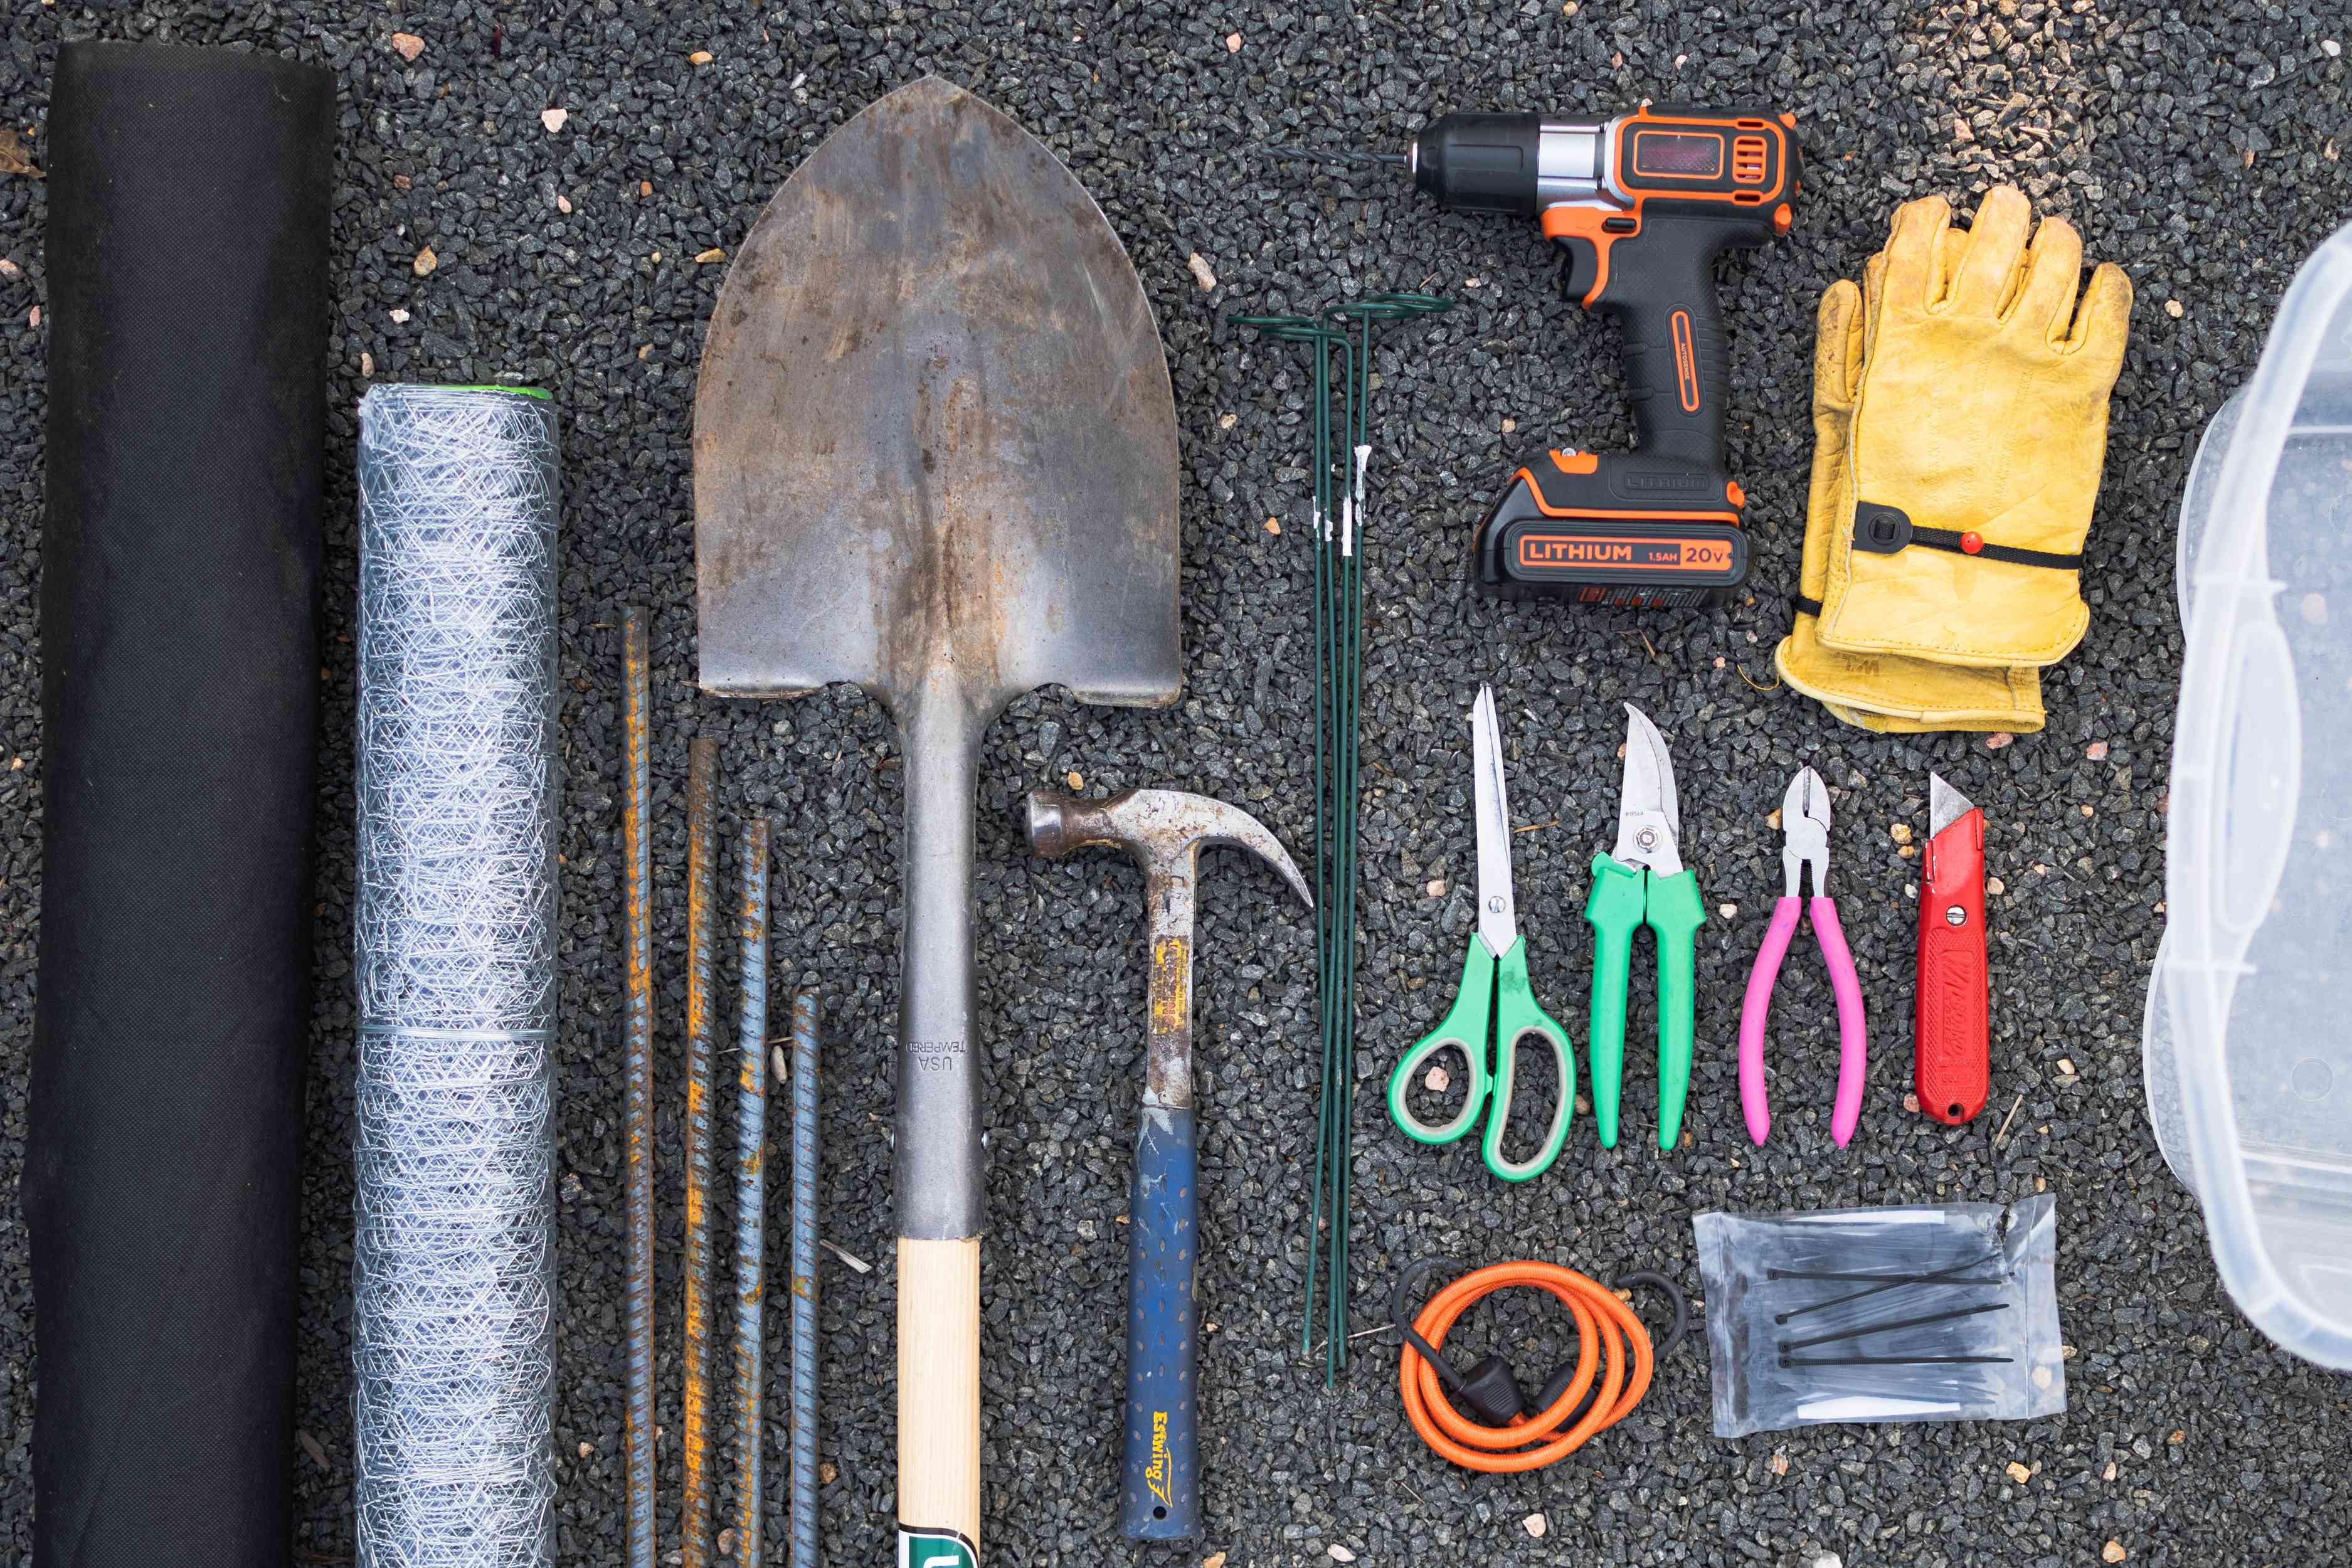 Materials and tools to make a composter